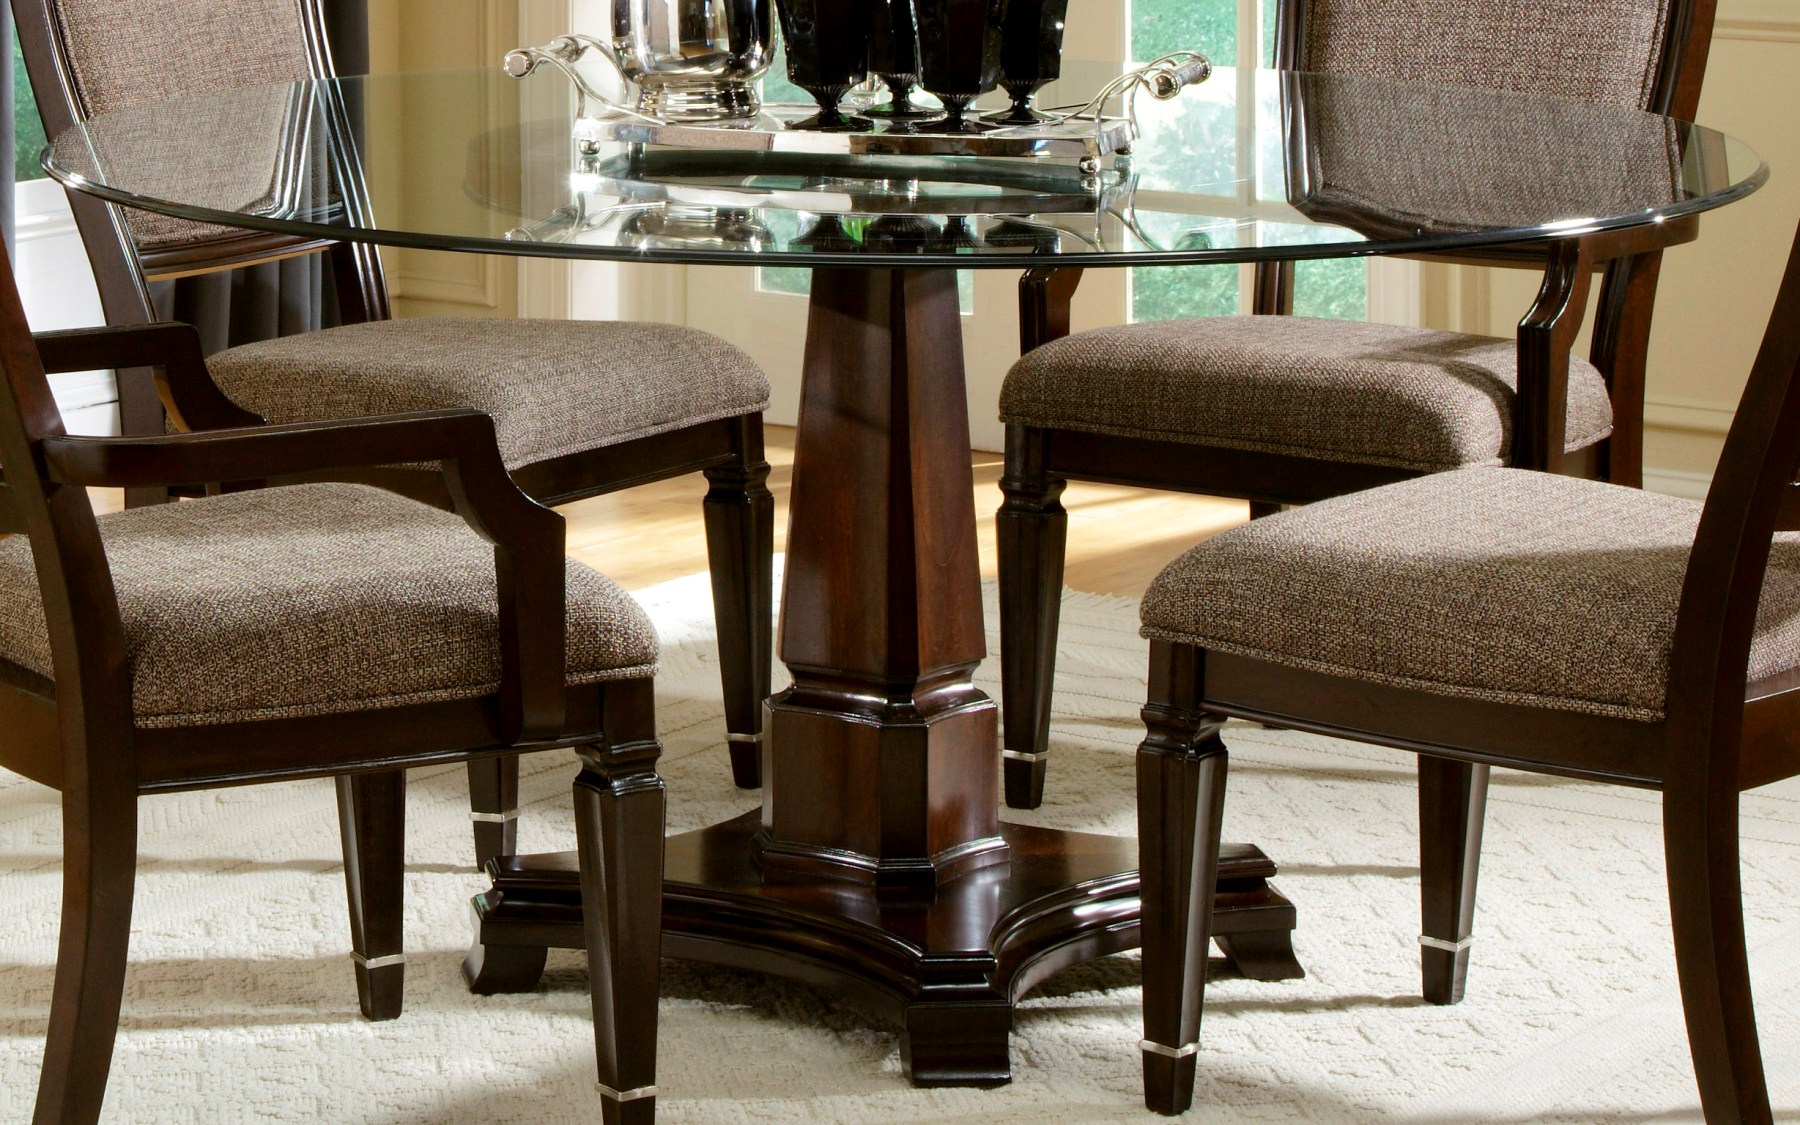 Modern dining table designs with glass top - Brown Wooden Dining Table With Round Glass On Top